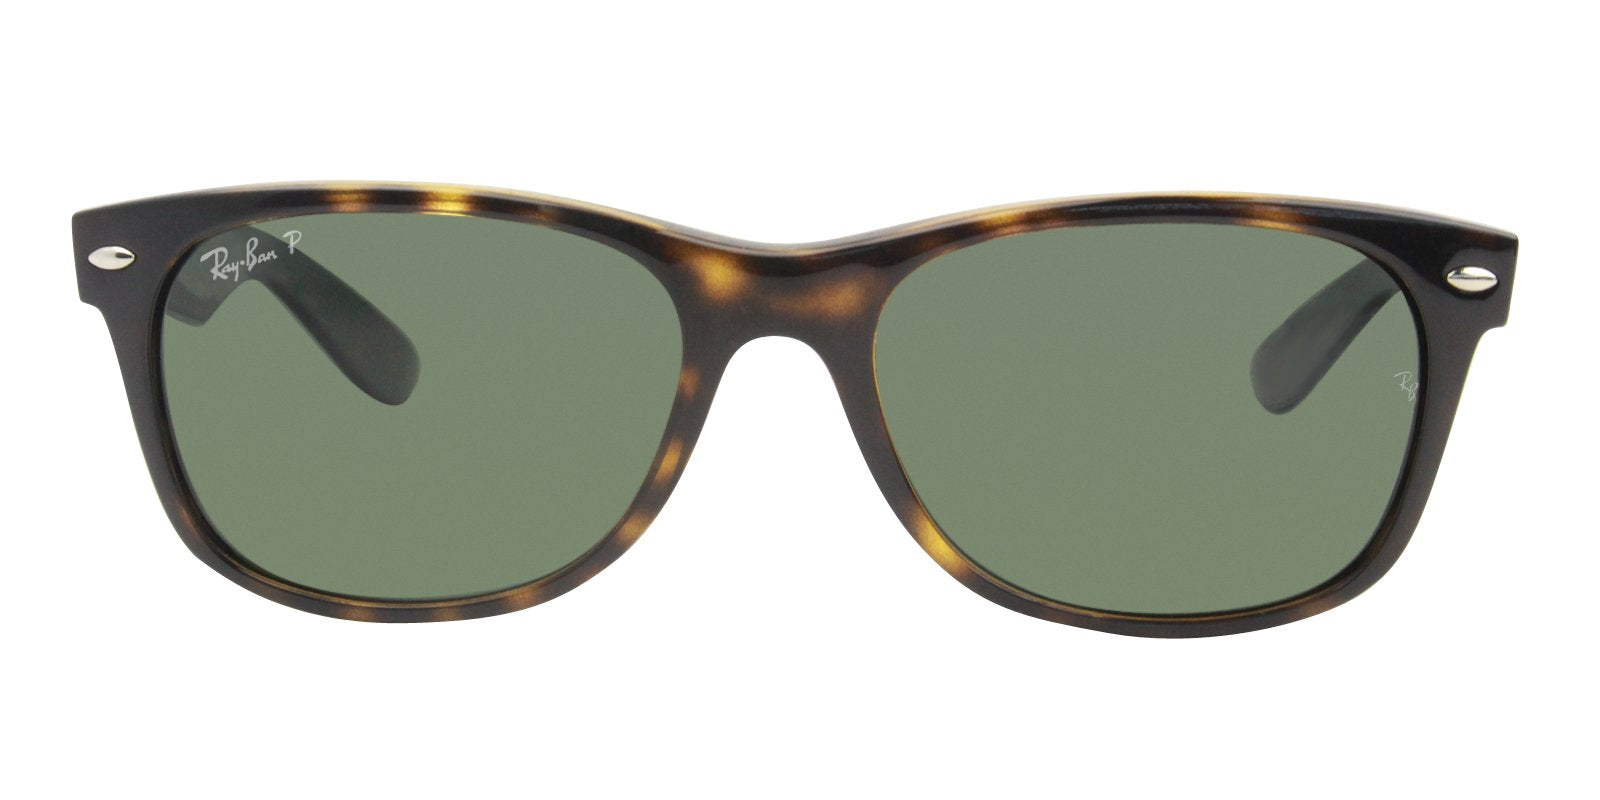 Ray Ban - New Wayfarer Tortoise Wayfarer Unisex Sunglasses - 55mm-Sunglasses-Designer Eyes